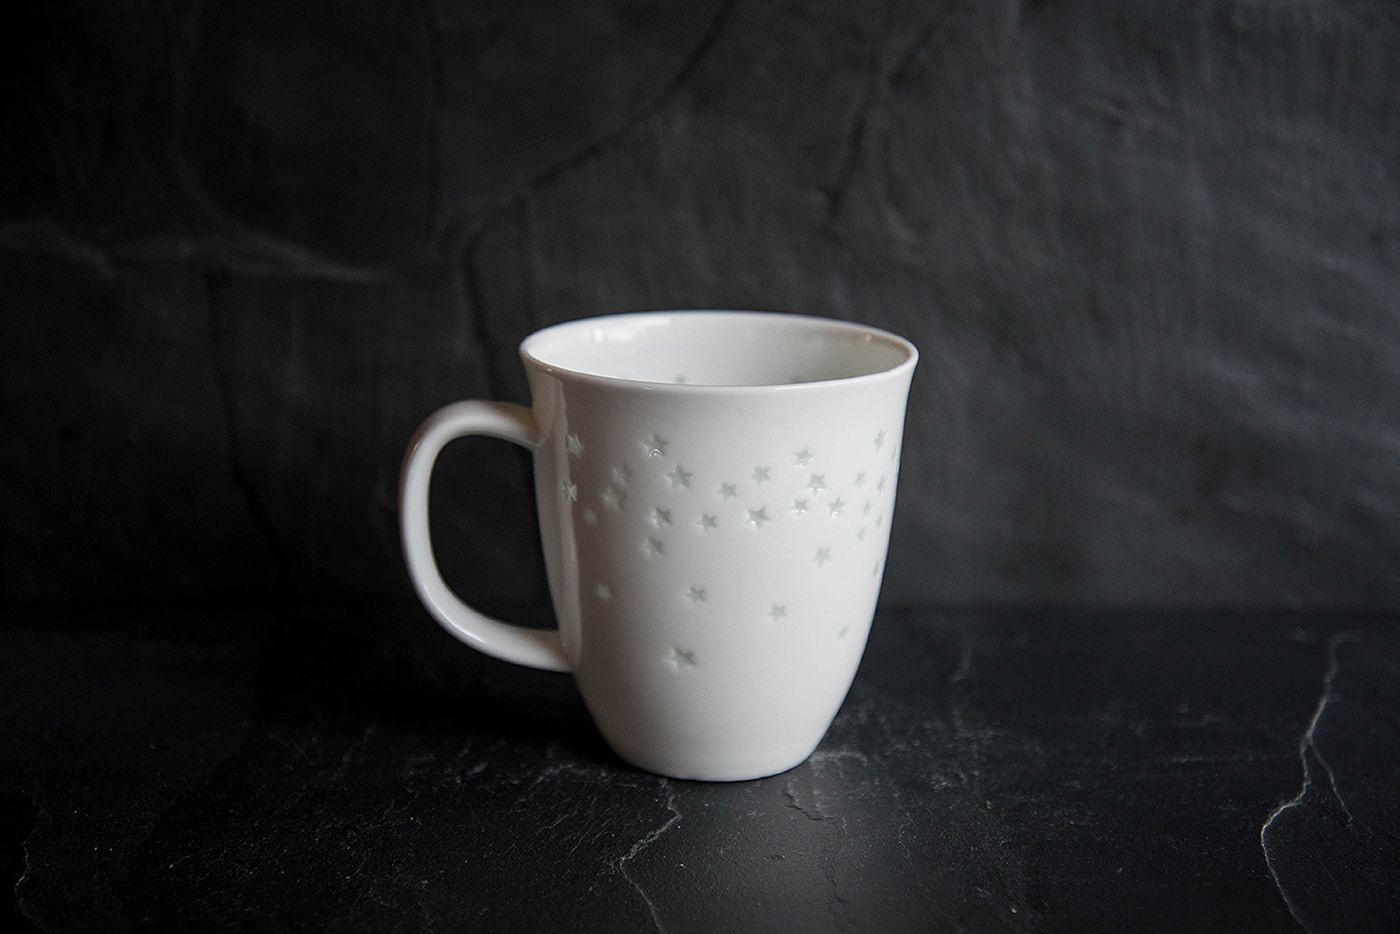 Starlight Super White Porcelain Mug